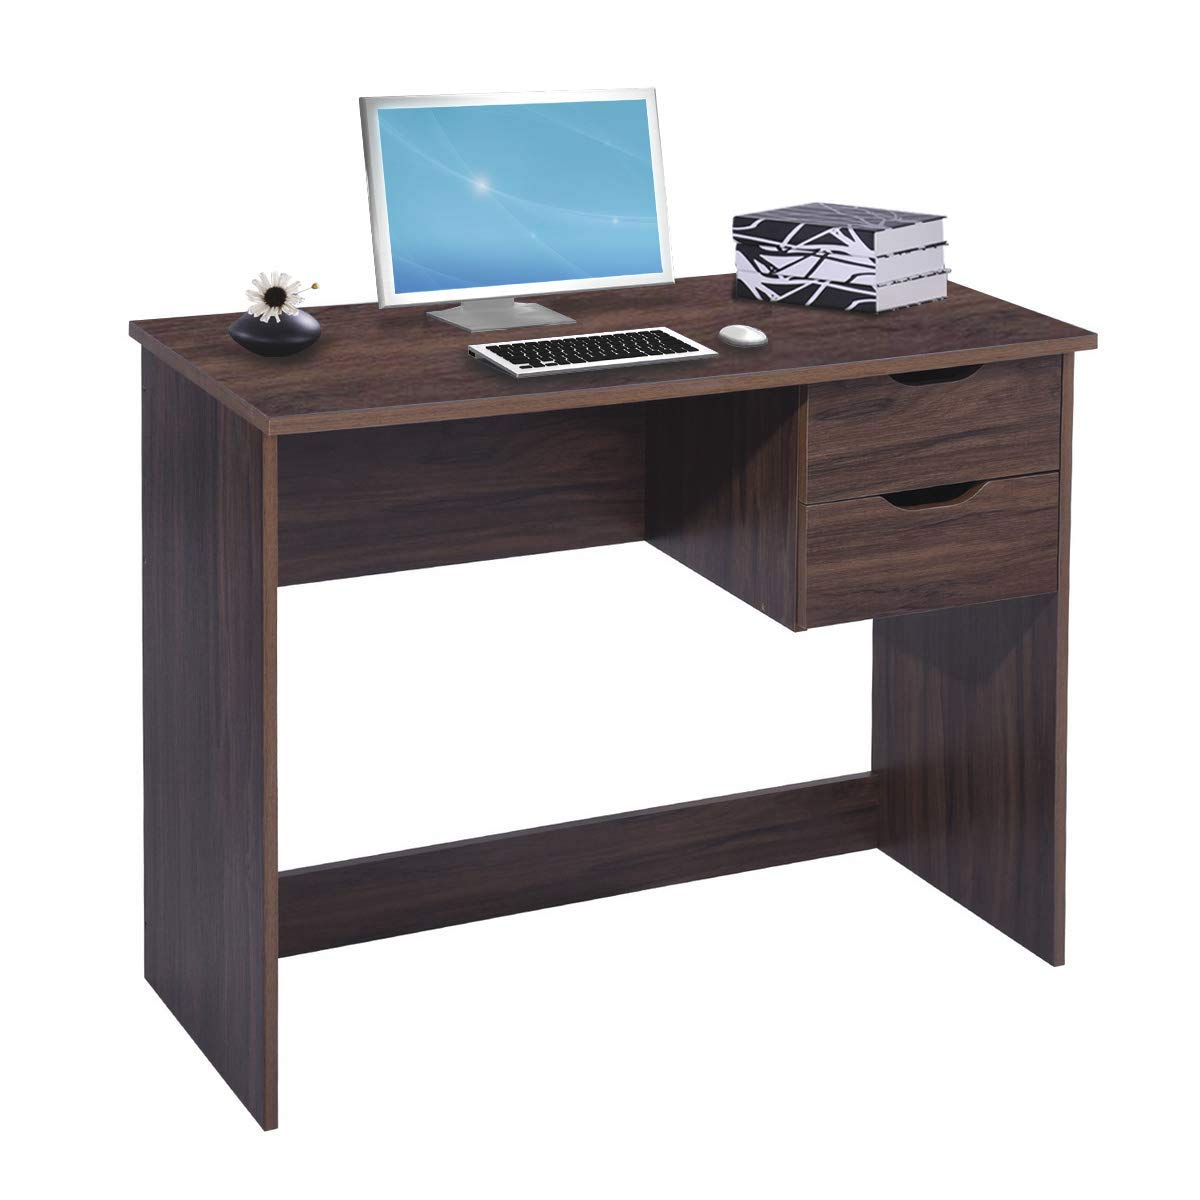 Brown Computer Desk Writing Study Table with 2 Side Drawers Classic Home Office Laptop Desk Brown Wood Notebook Table (35.4x17.7x29.1 Inches) by Coavas